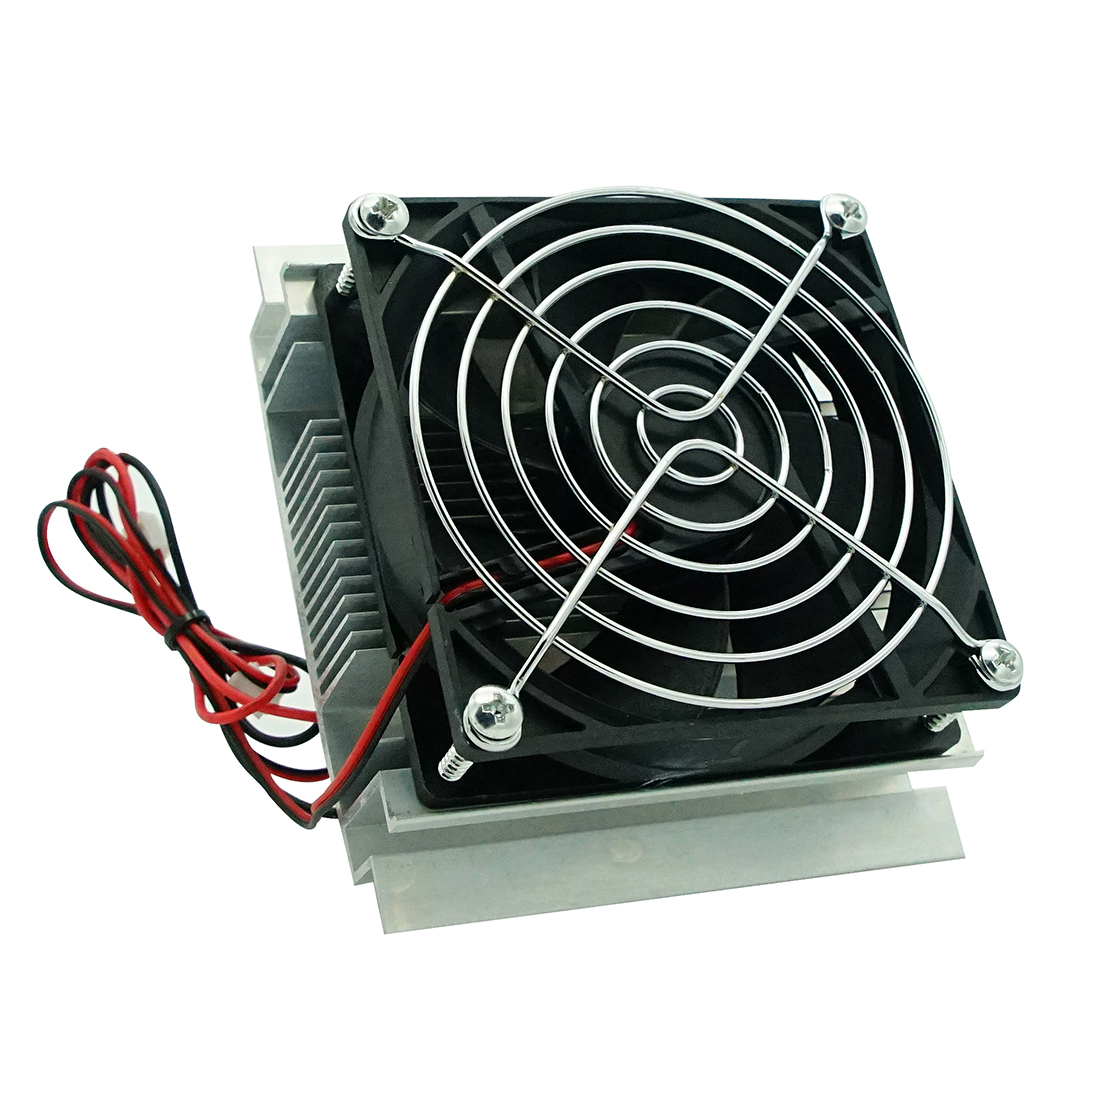 DIY Thermoelectric Peltier Refrigeration Radiator Semiconductor Cooling System Kit Cooler Conduction Module Fan Hot Sale - Black